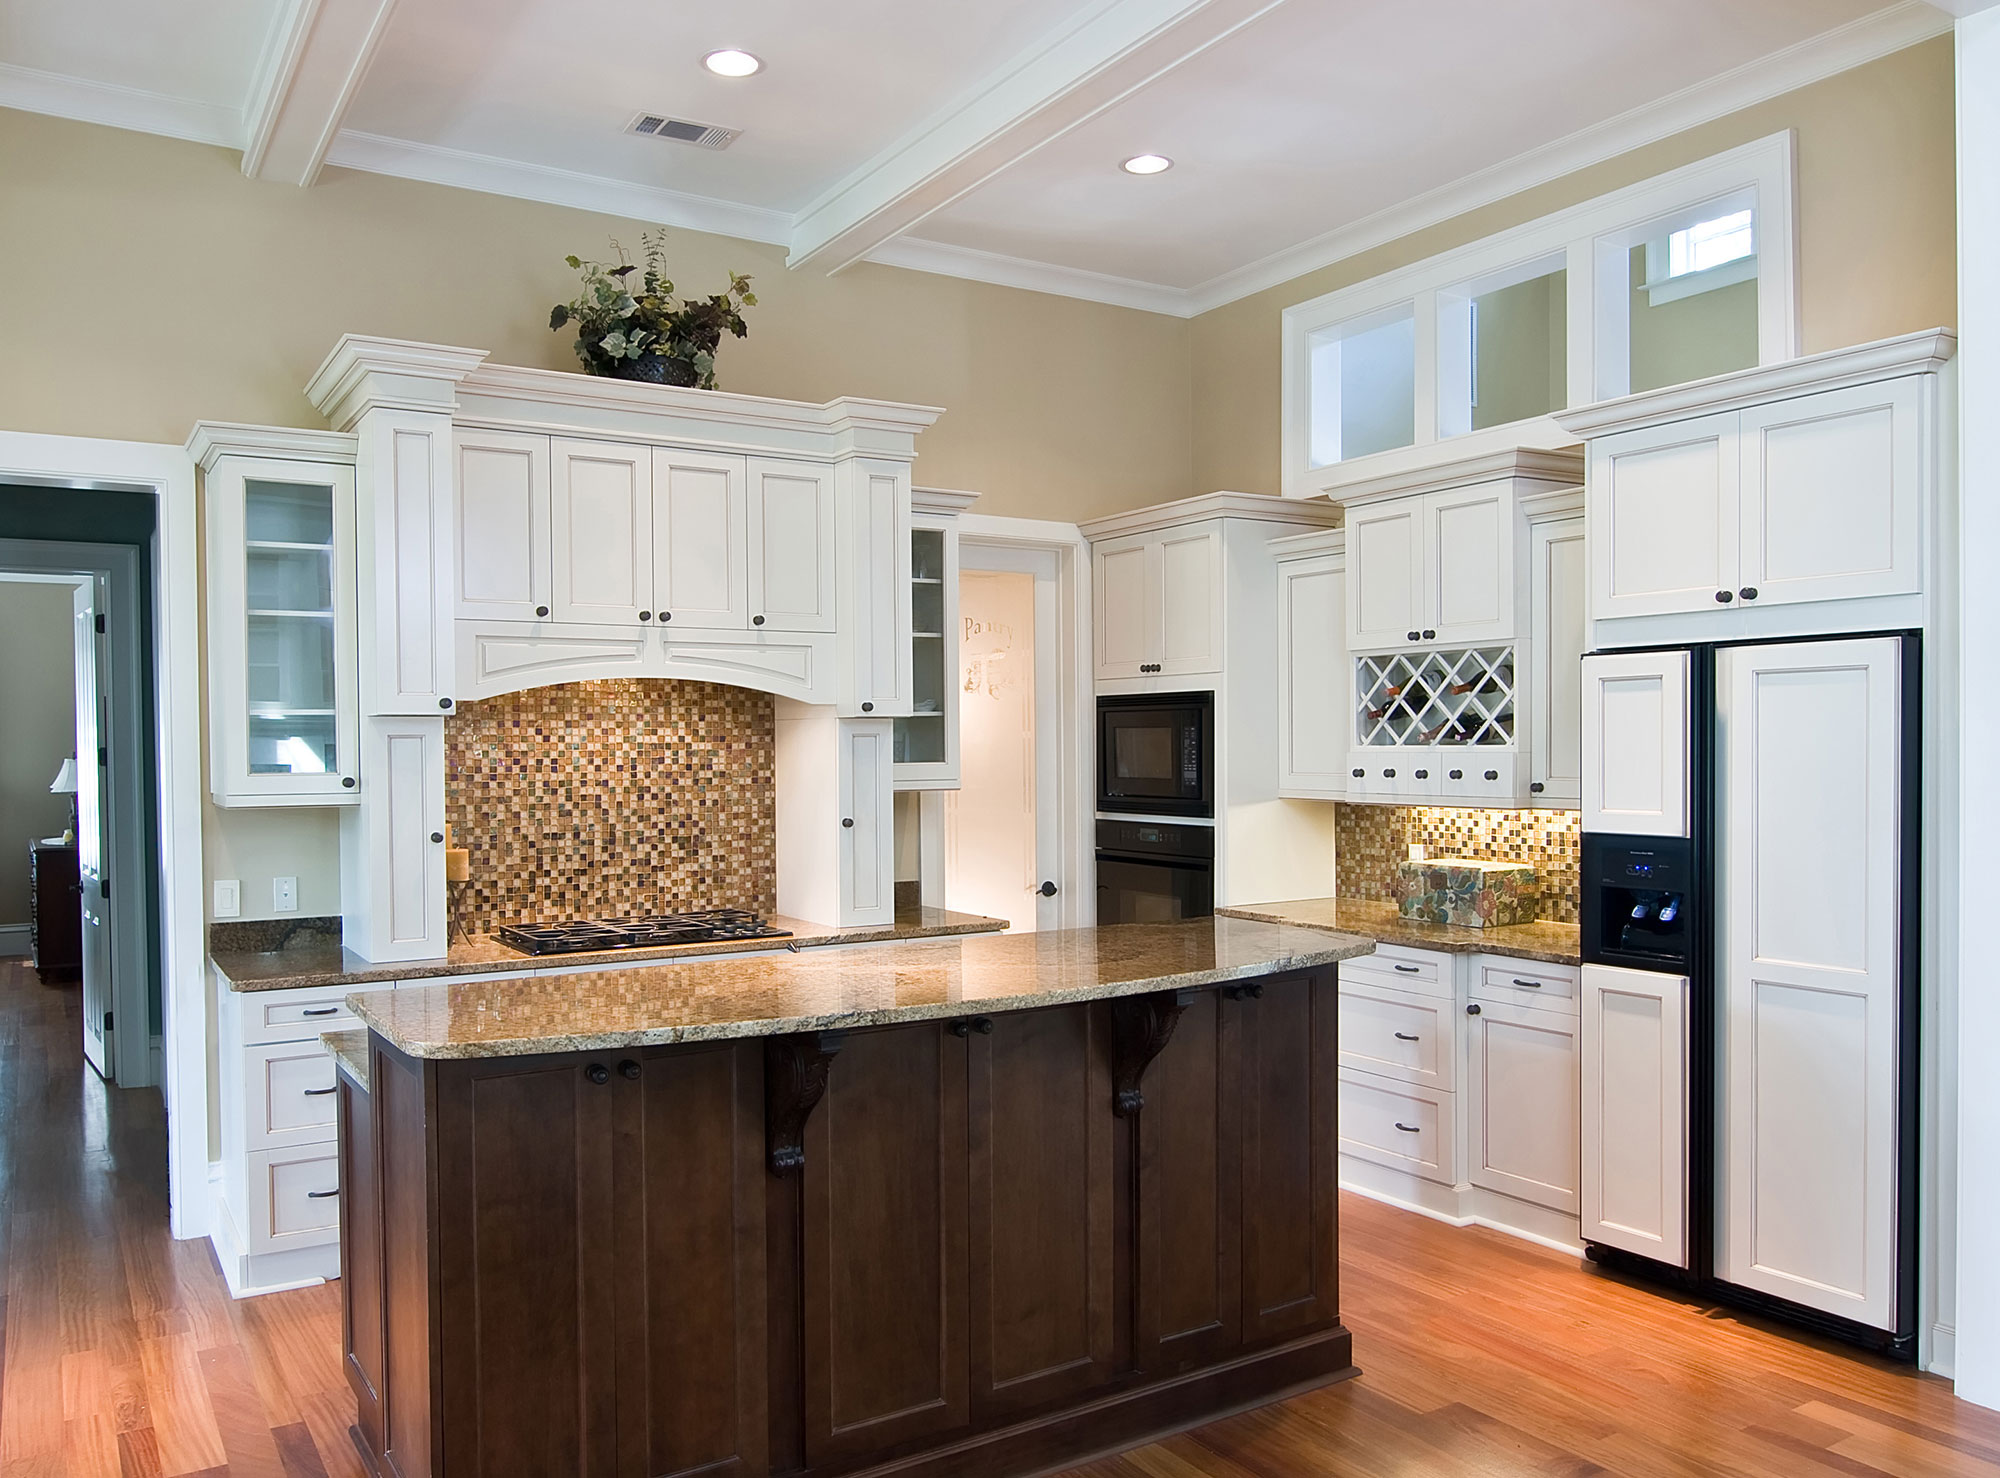 Custom Cabinets Near Me Local Remodeling Contractors